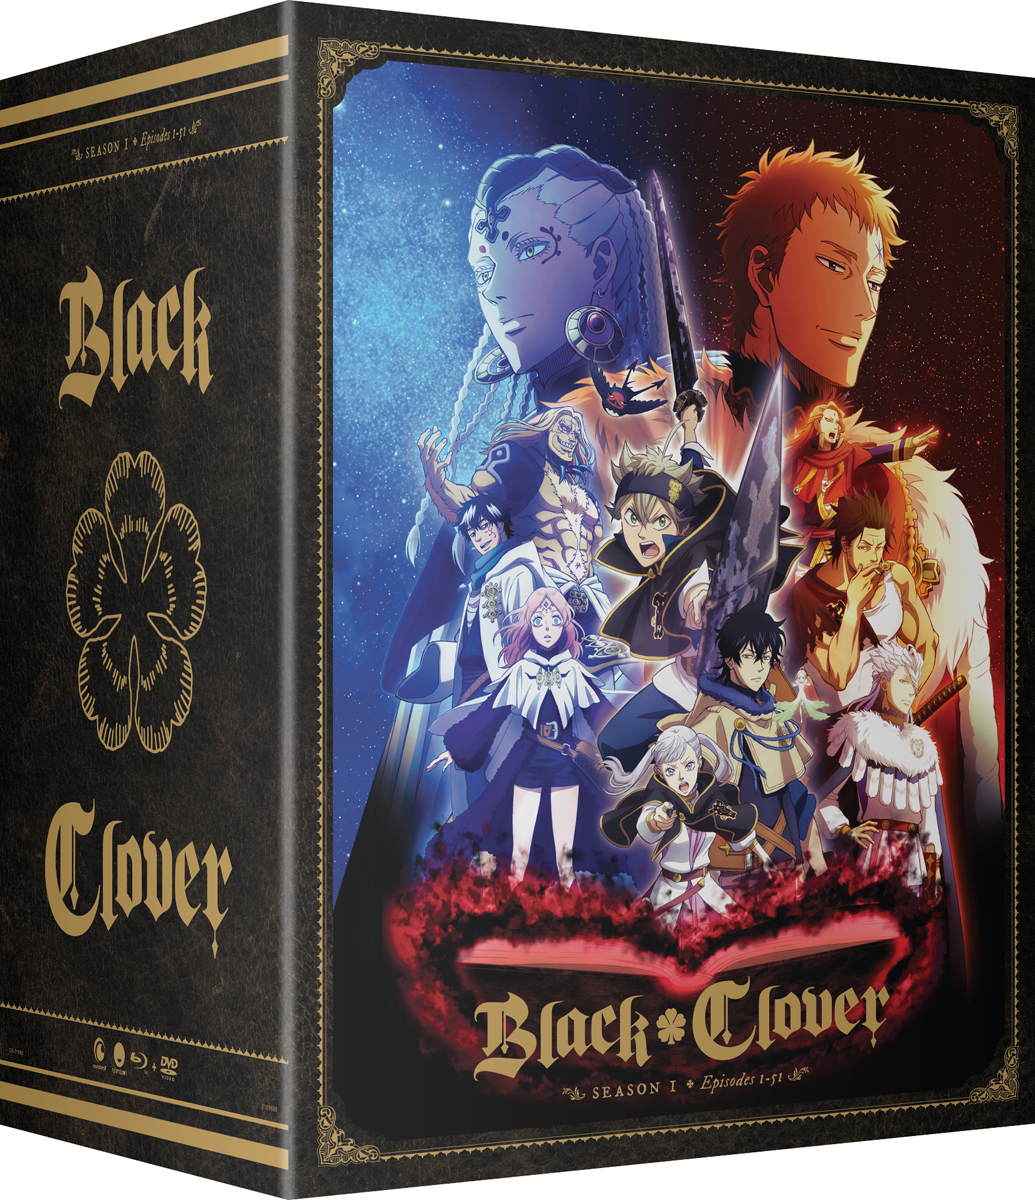 Black Clover Season 1 Part 3 Collector's Box Blu-ray/DVD